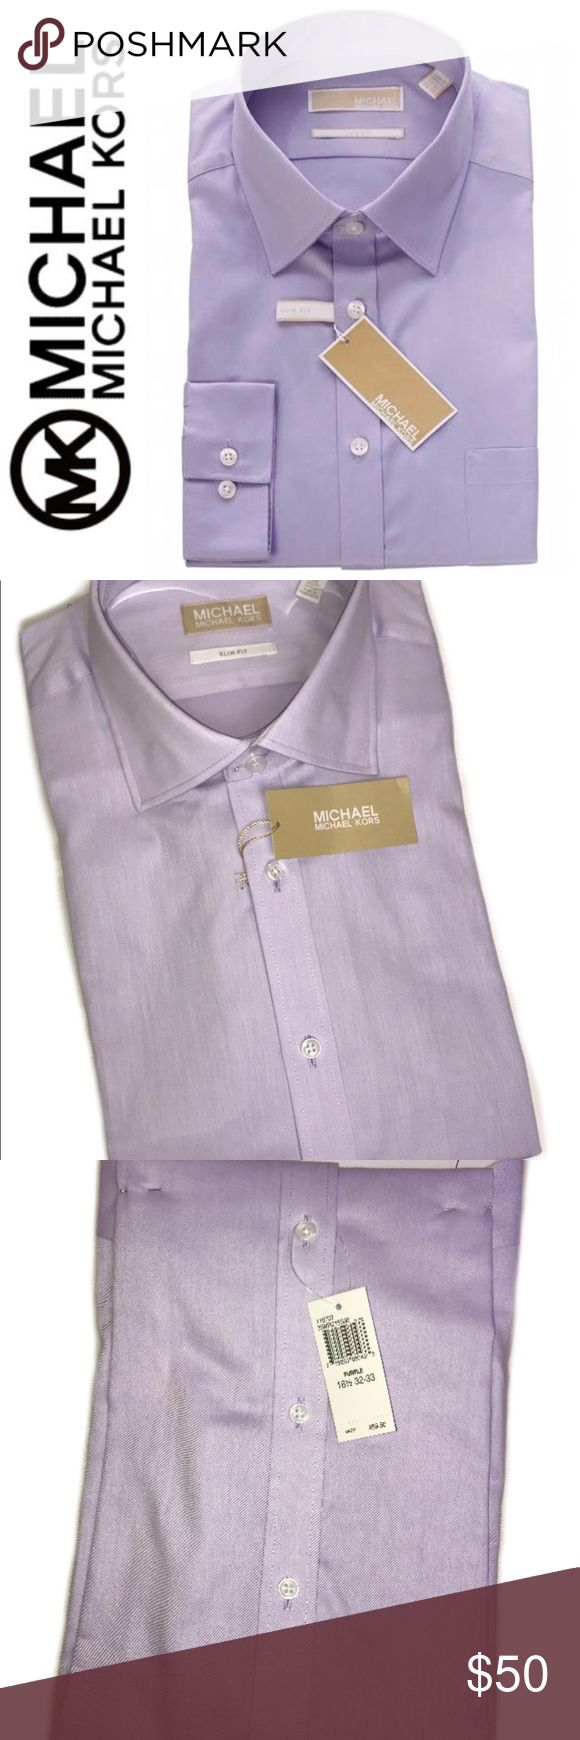 Michael Kors Signature Slim Fit Dress Shirt Michael Kors Signature Slim Fit Dress Shirt in Brilliant Lavender, Size Large 16 1/2, 32/33 Tag, Dress to Impress with this Long Sleeve Dress Shirt, a Must to Every Man's Closet! Michael Kors Shirts Dress Shirts